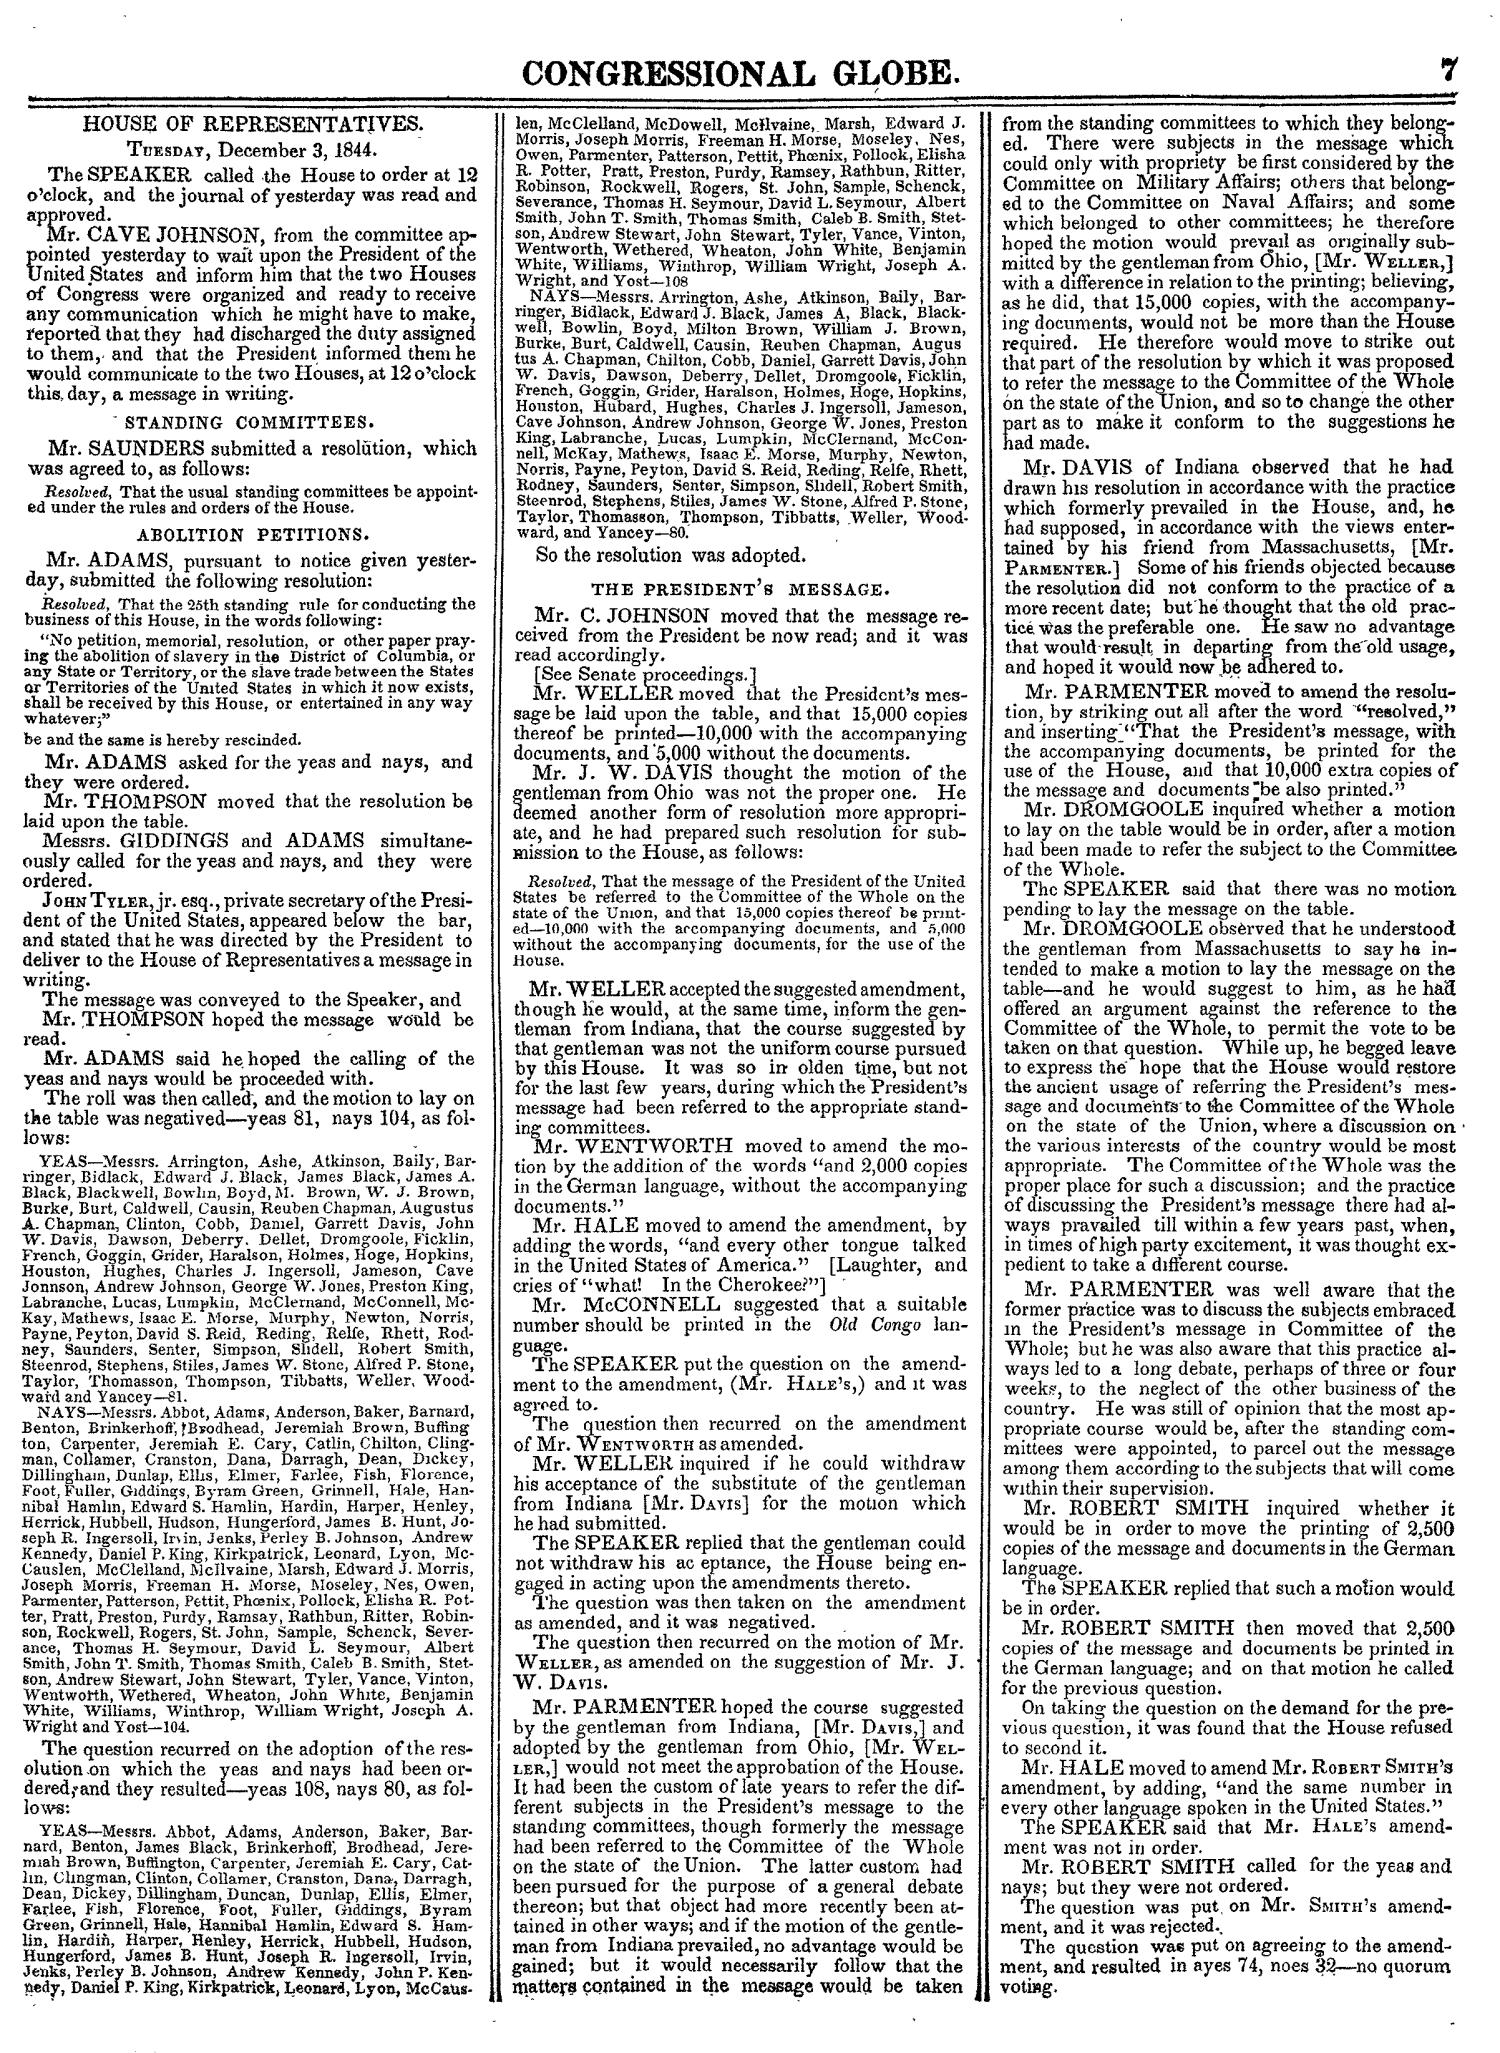 The Congressional Globe, Volume 14: Twenty-Eighth Congress, Second Session                                                                                                      7